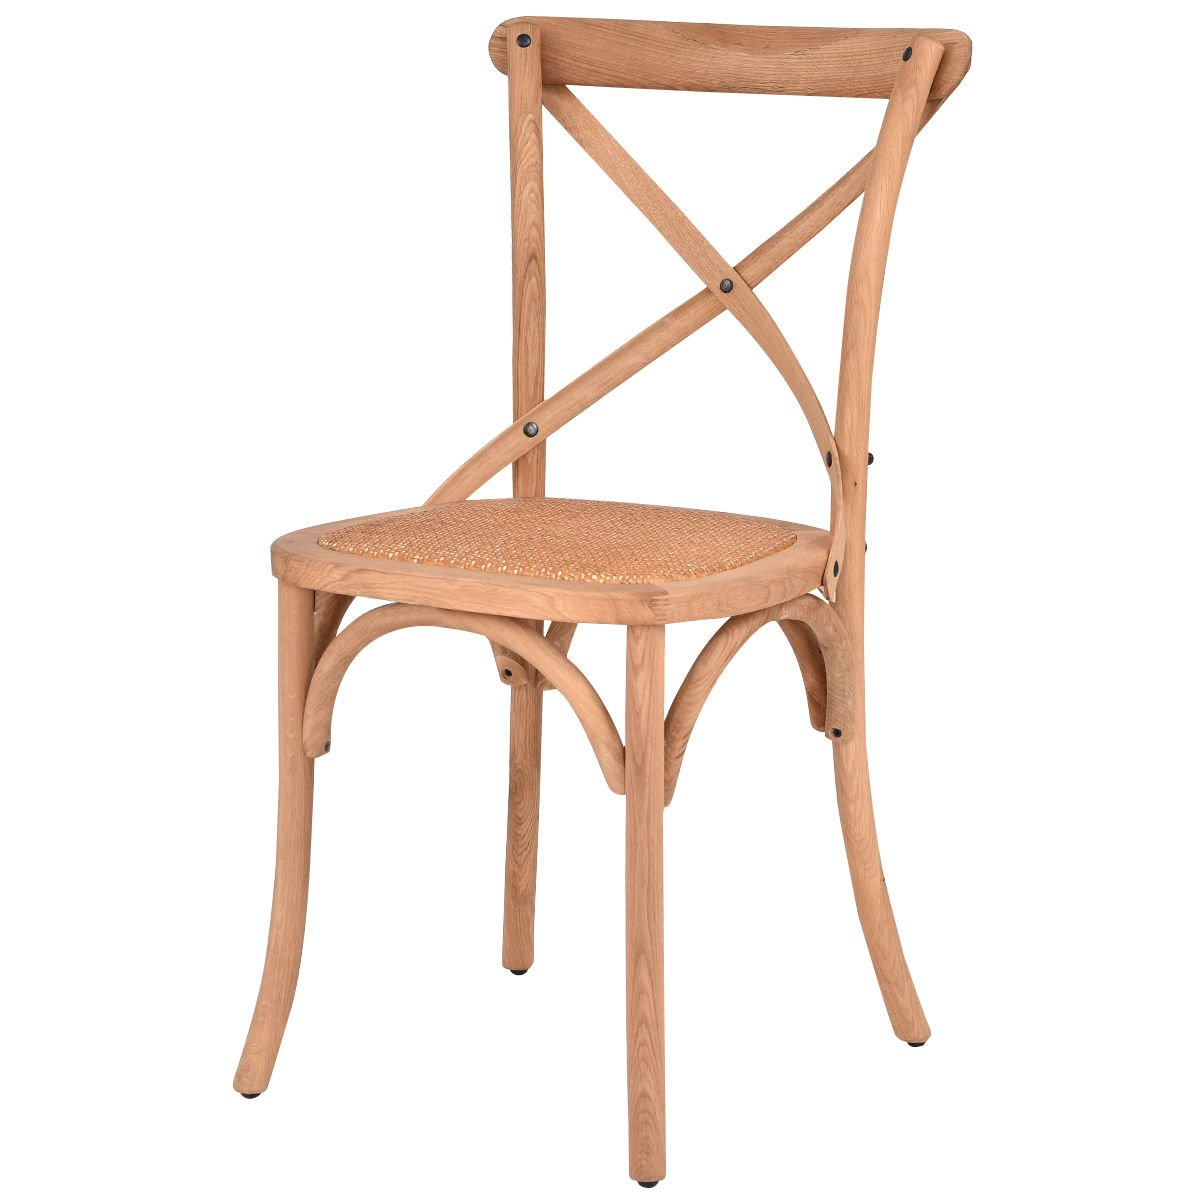 Costway Cross Back Antique Style Dining Chair With Rattan Seat (Natural)